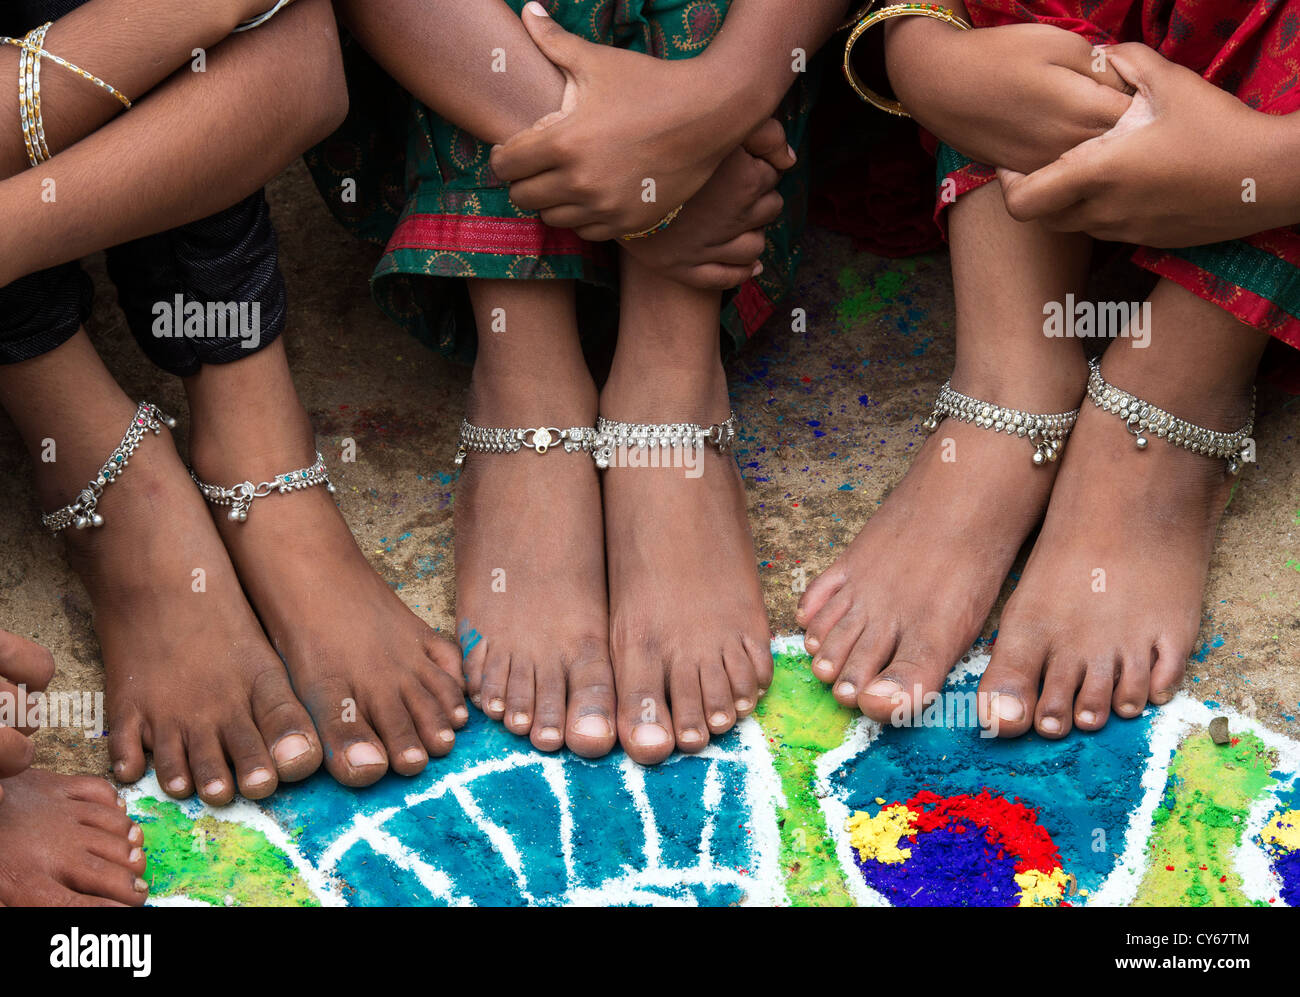 Indian Girls Bare Feet Around A Indian Rangoli Peacock Festival Design Made In Coloured Powder